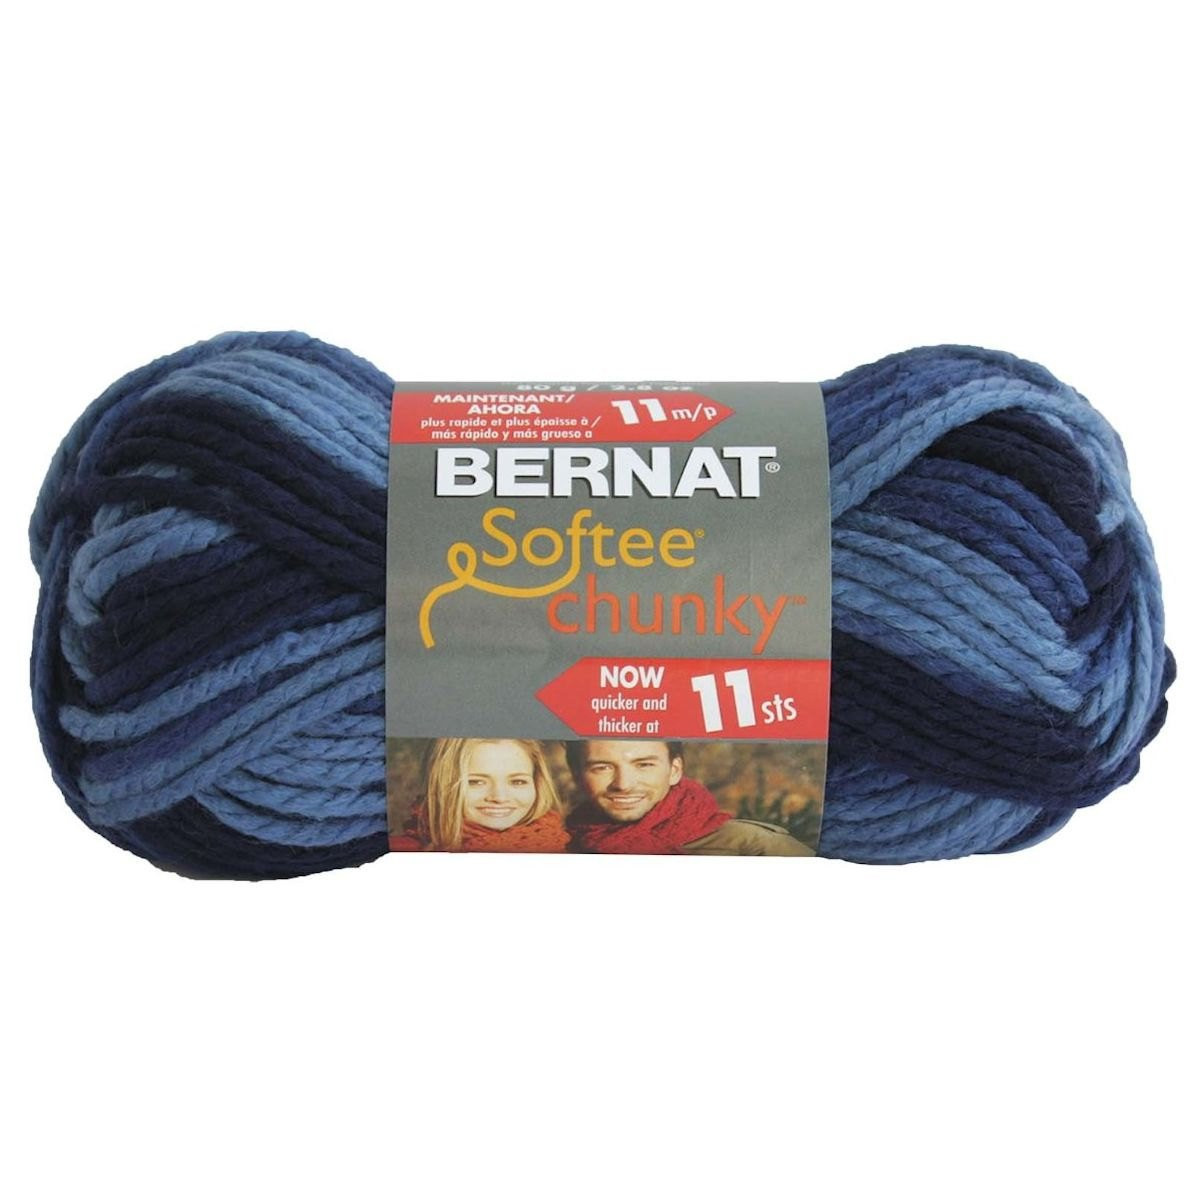 DENIM OMBRE Bernat Softee Chunky Yarn Super Bulky yarn Blue